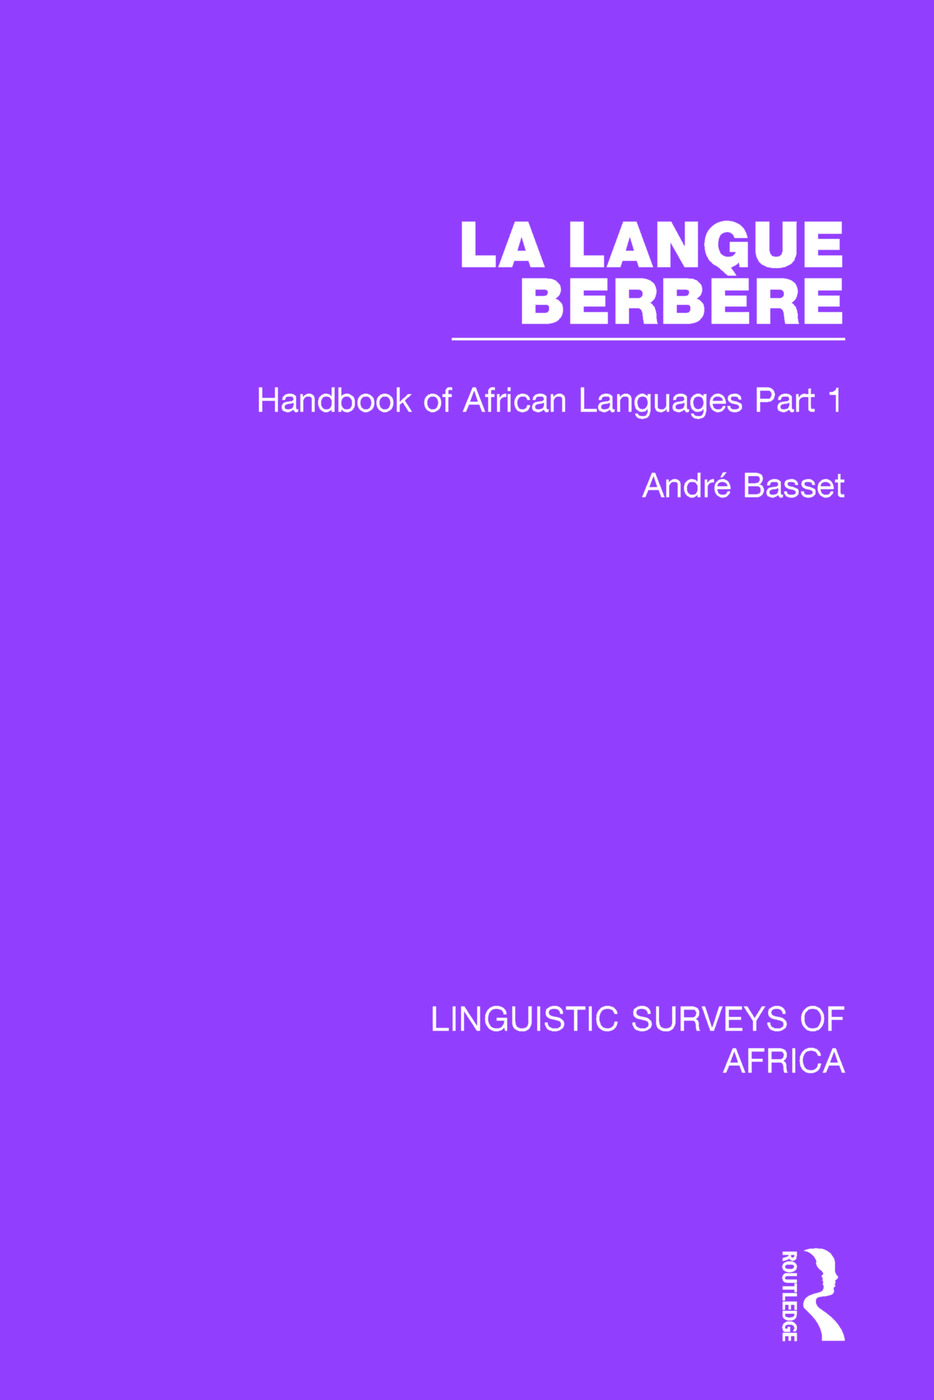 La Langue Berbère: Handbook of African Languages Part 1 book cover